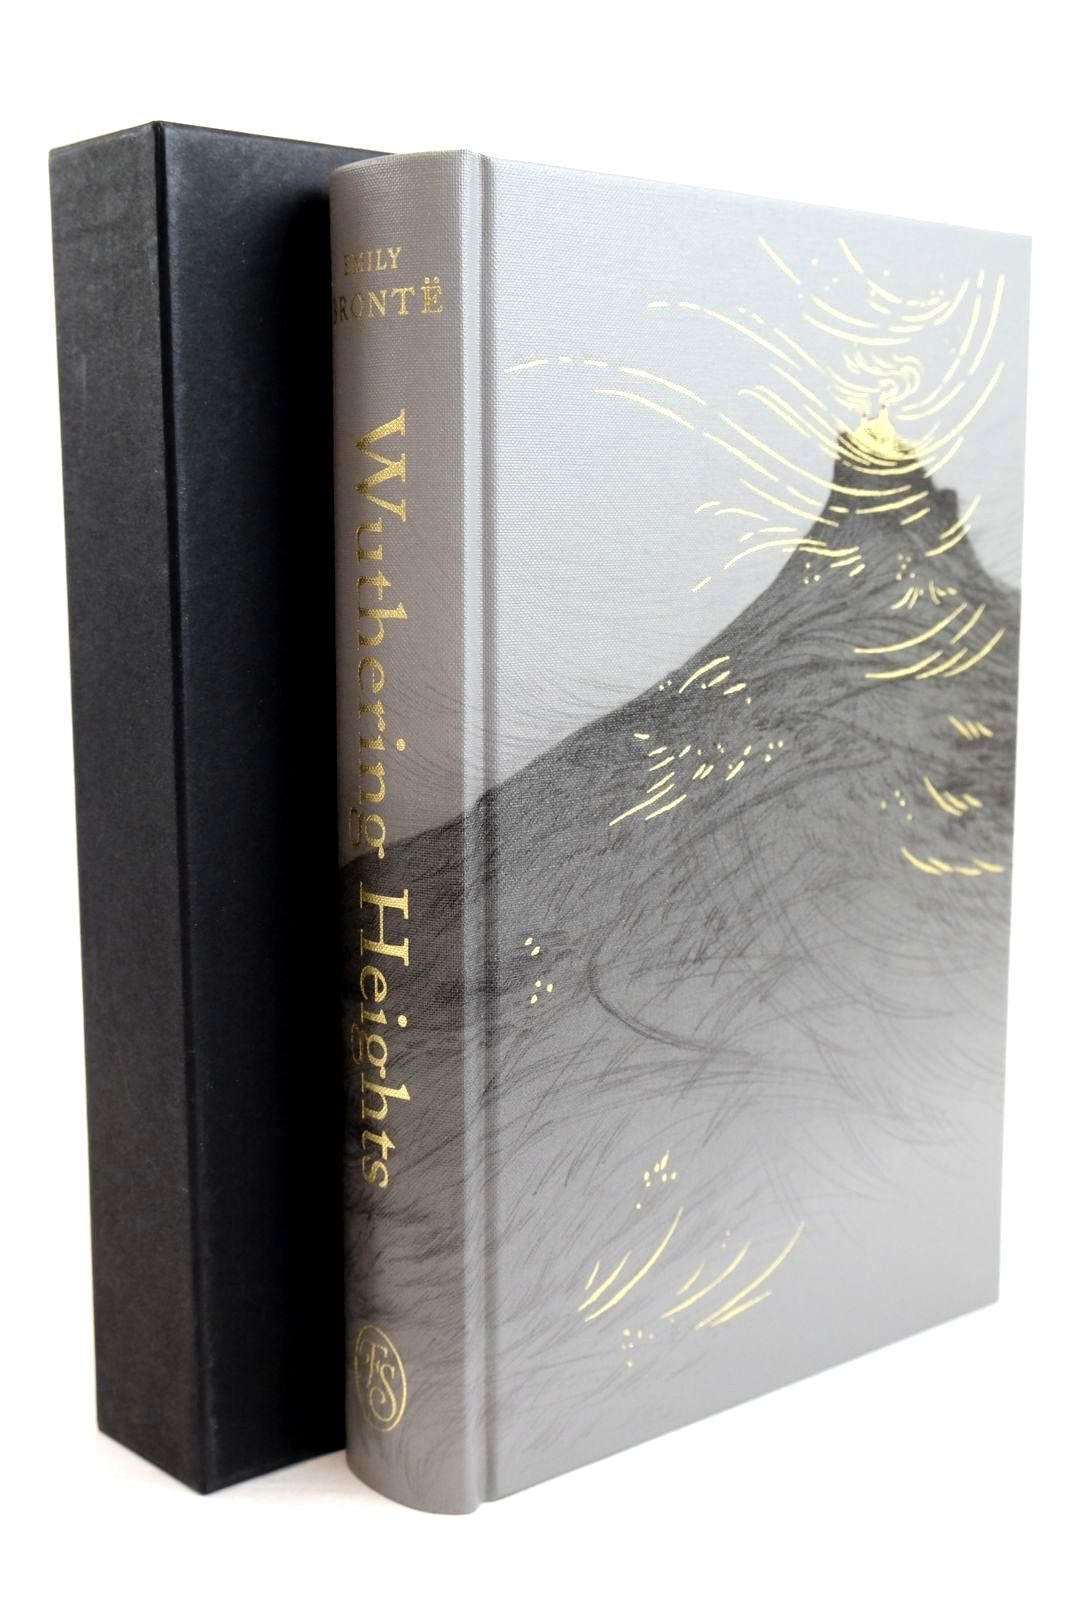 Photo of WUTHERING HEIGHTS written by Bronte, Emily illustrated by Cai, Rovina published by Folio Society (STOCK CODE: 1320594)  for sale by Stella & Rose's Books